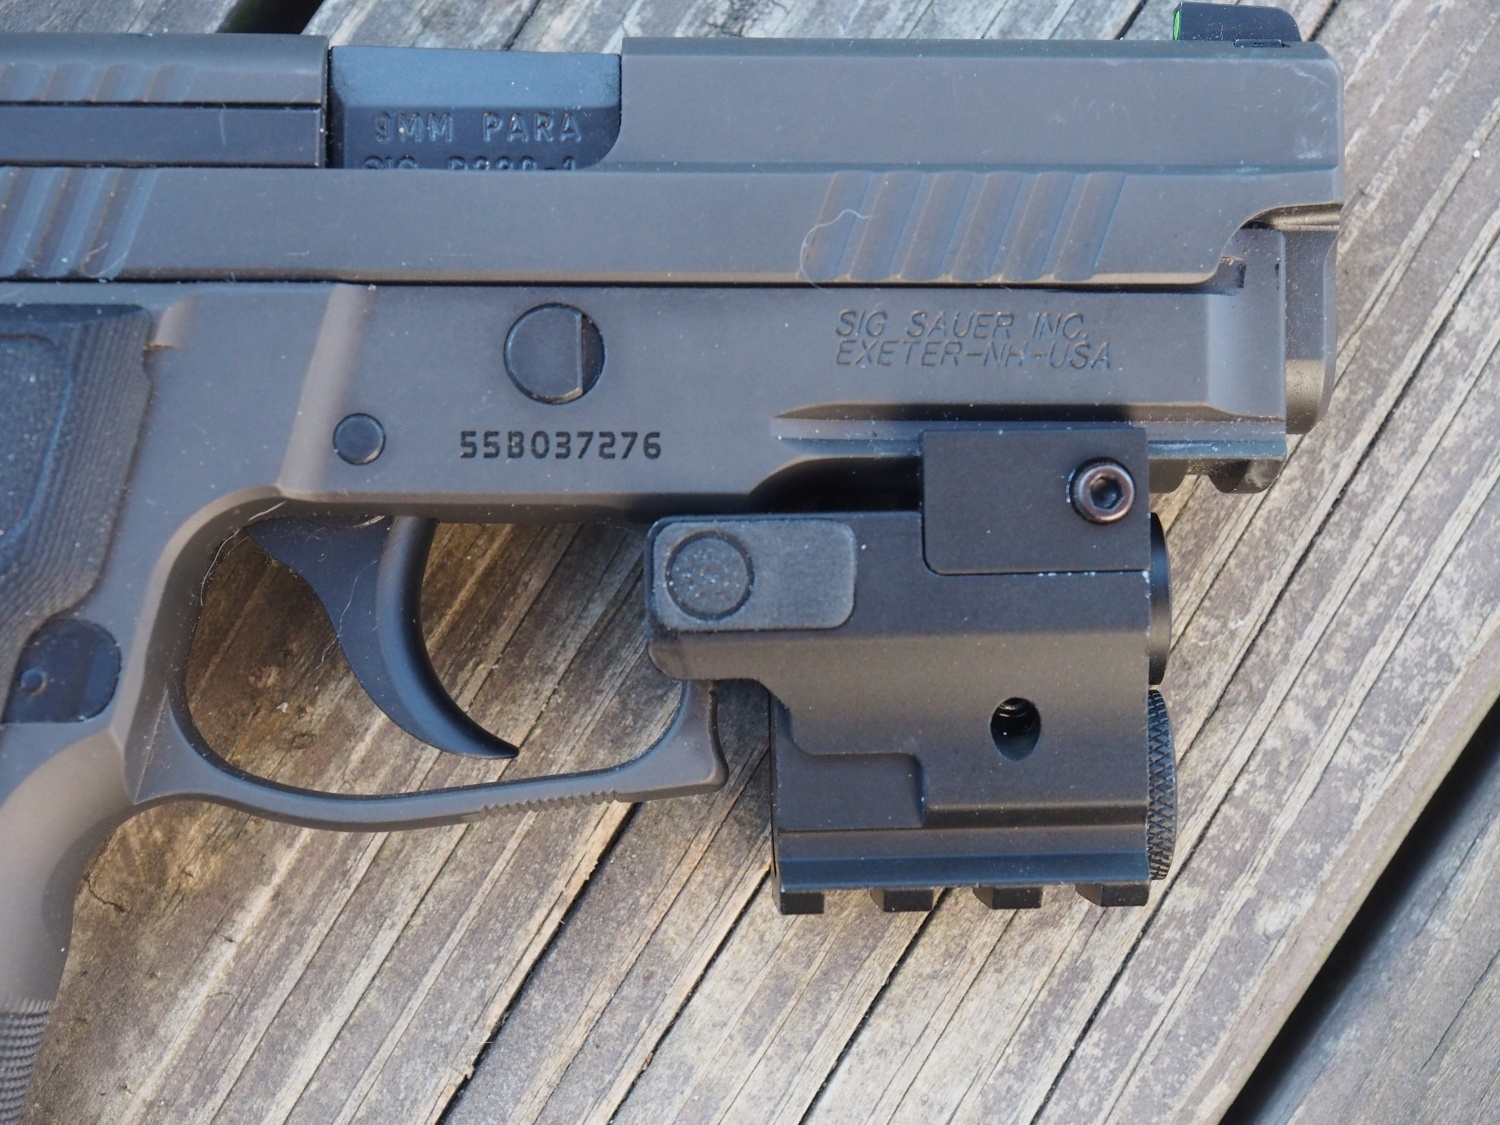 Shown on the SIG 229